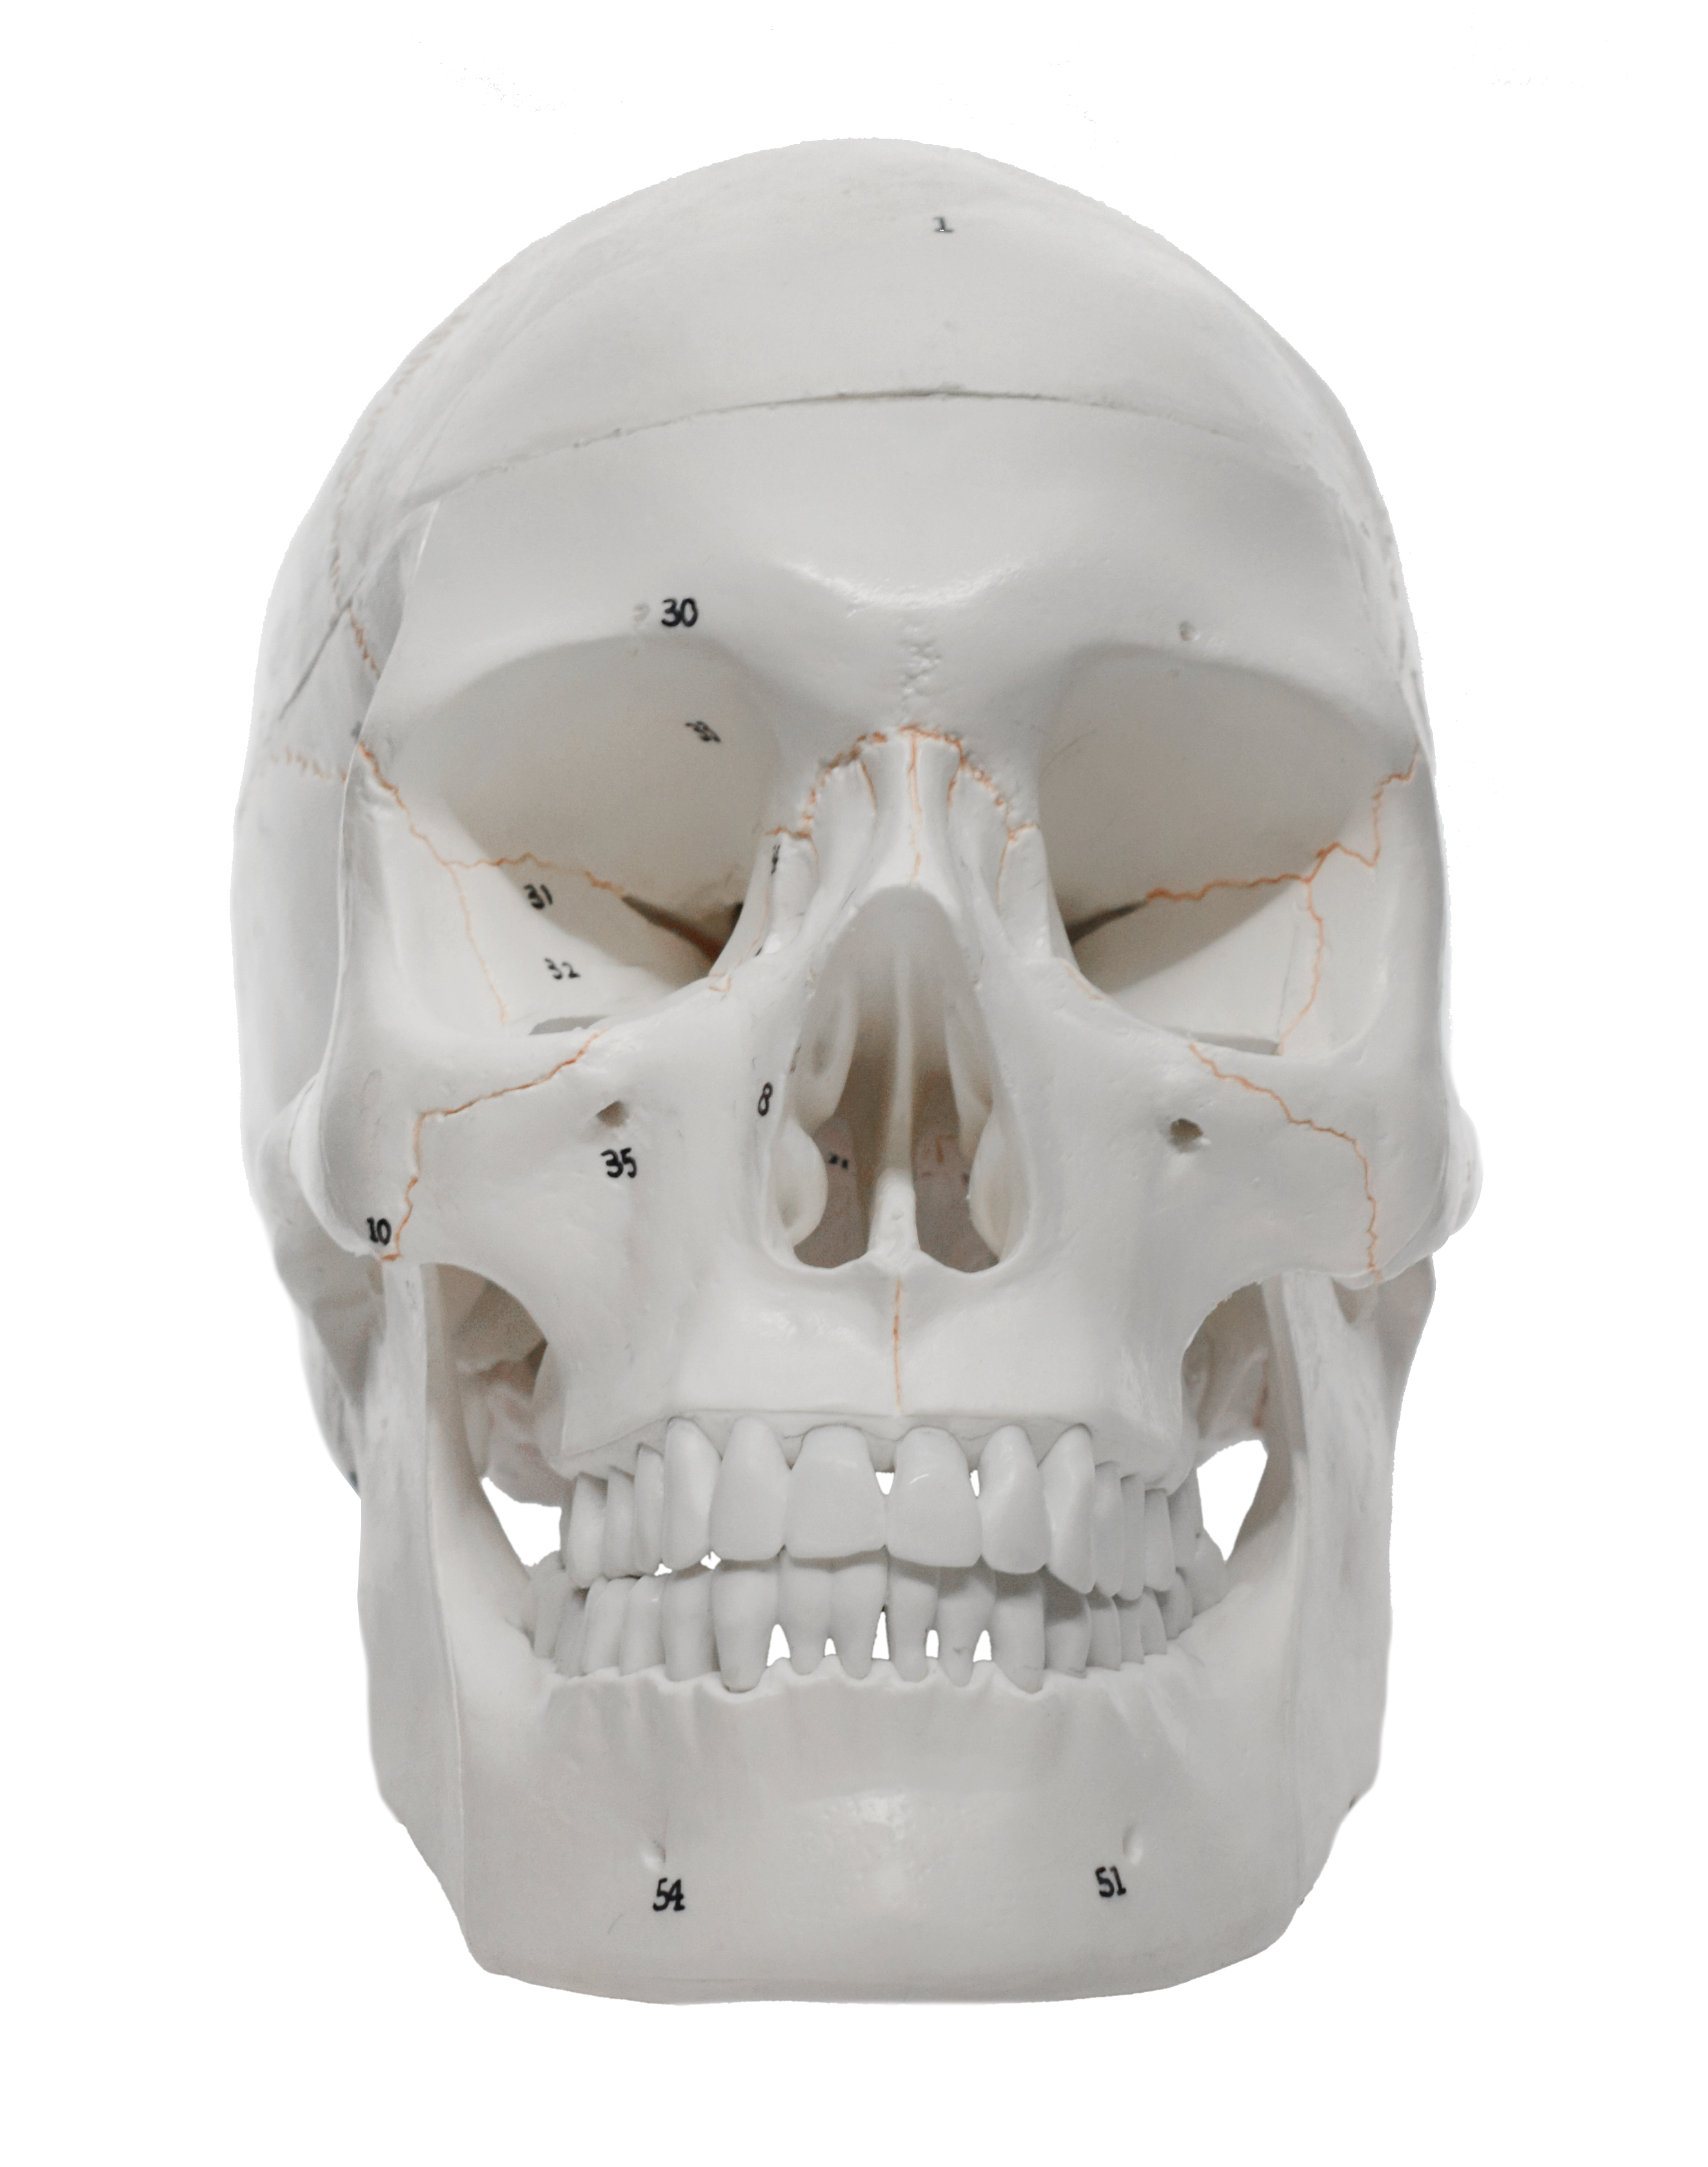 Star Spark Medical Anatomical Numbered Human Skull Model Life Size Includes Full Set of Teeth